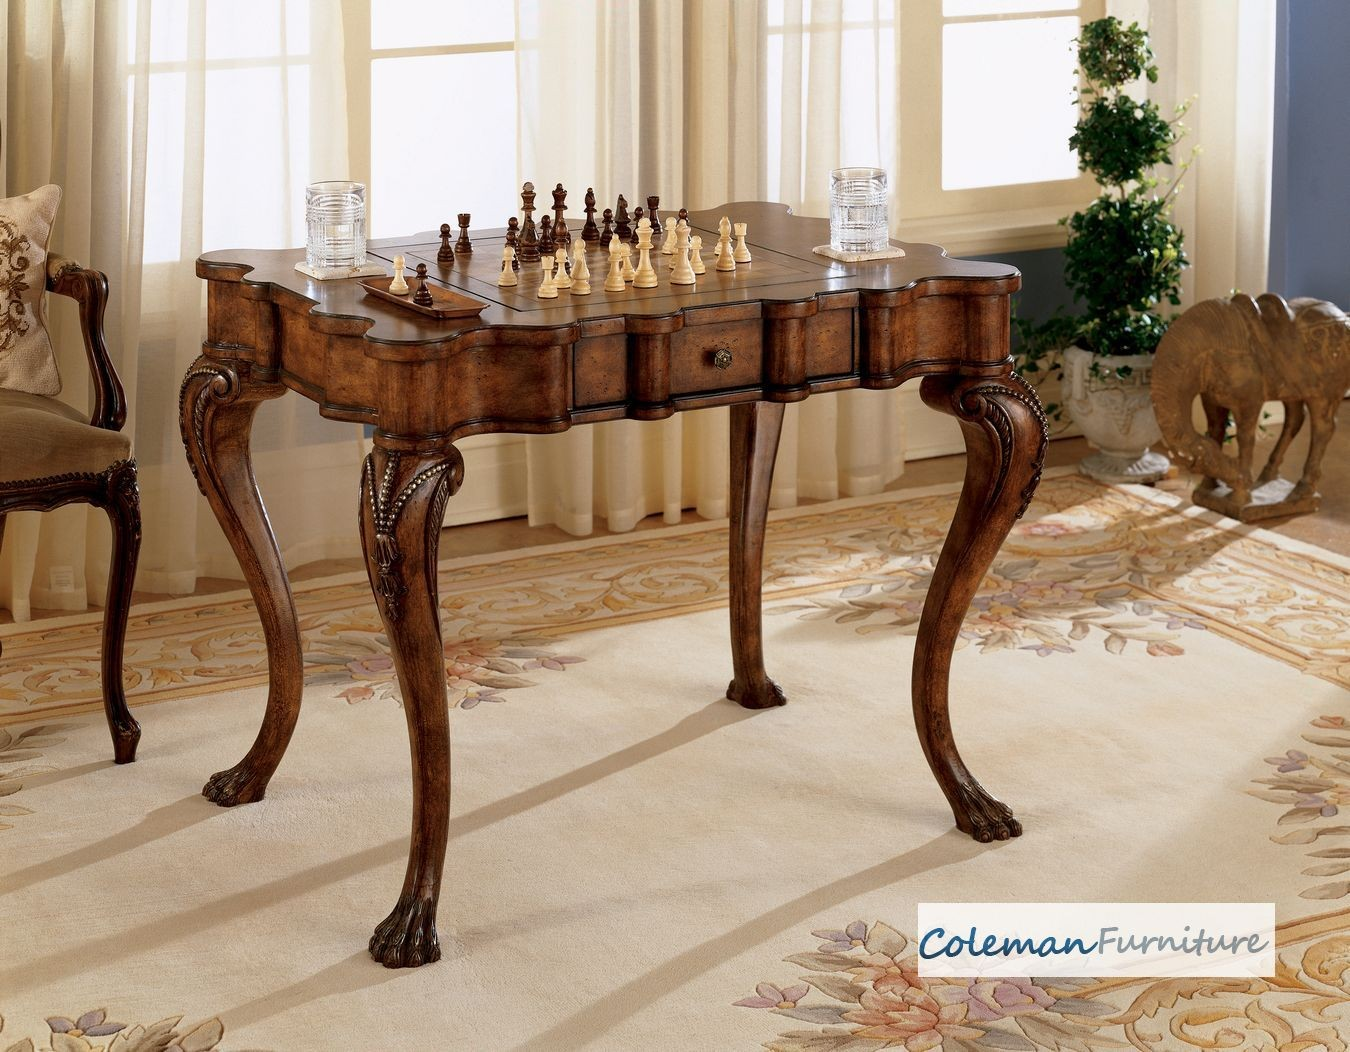 game tables room furniture card accent table heritage sauder tablecloth measurements mission style tiffany lamps hallway chest drawers carpet metal strip threshold drawer mirrored